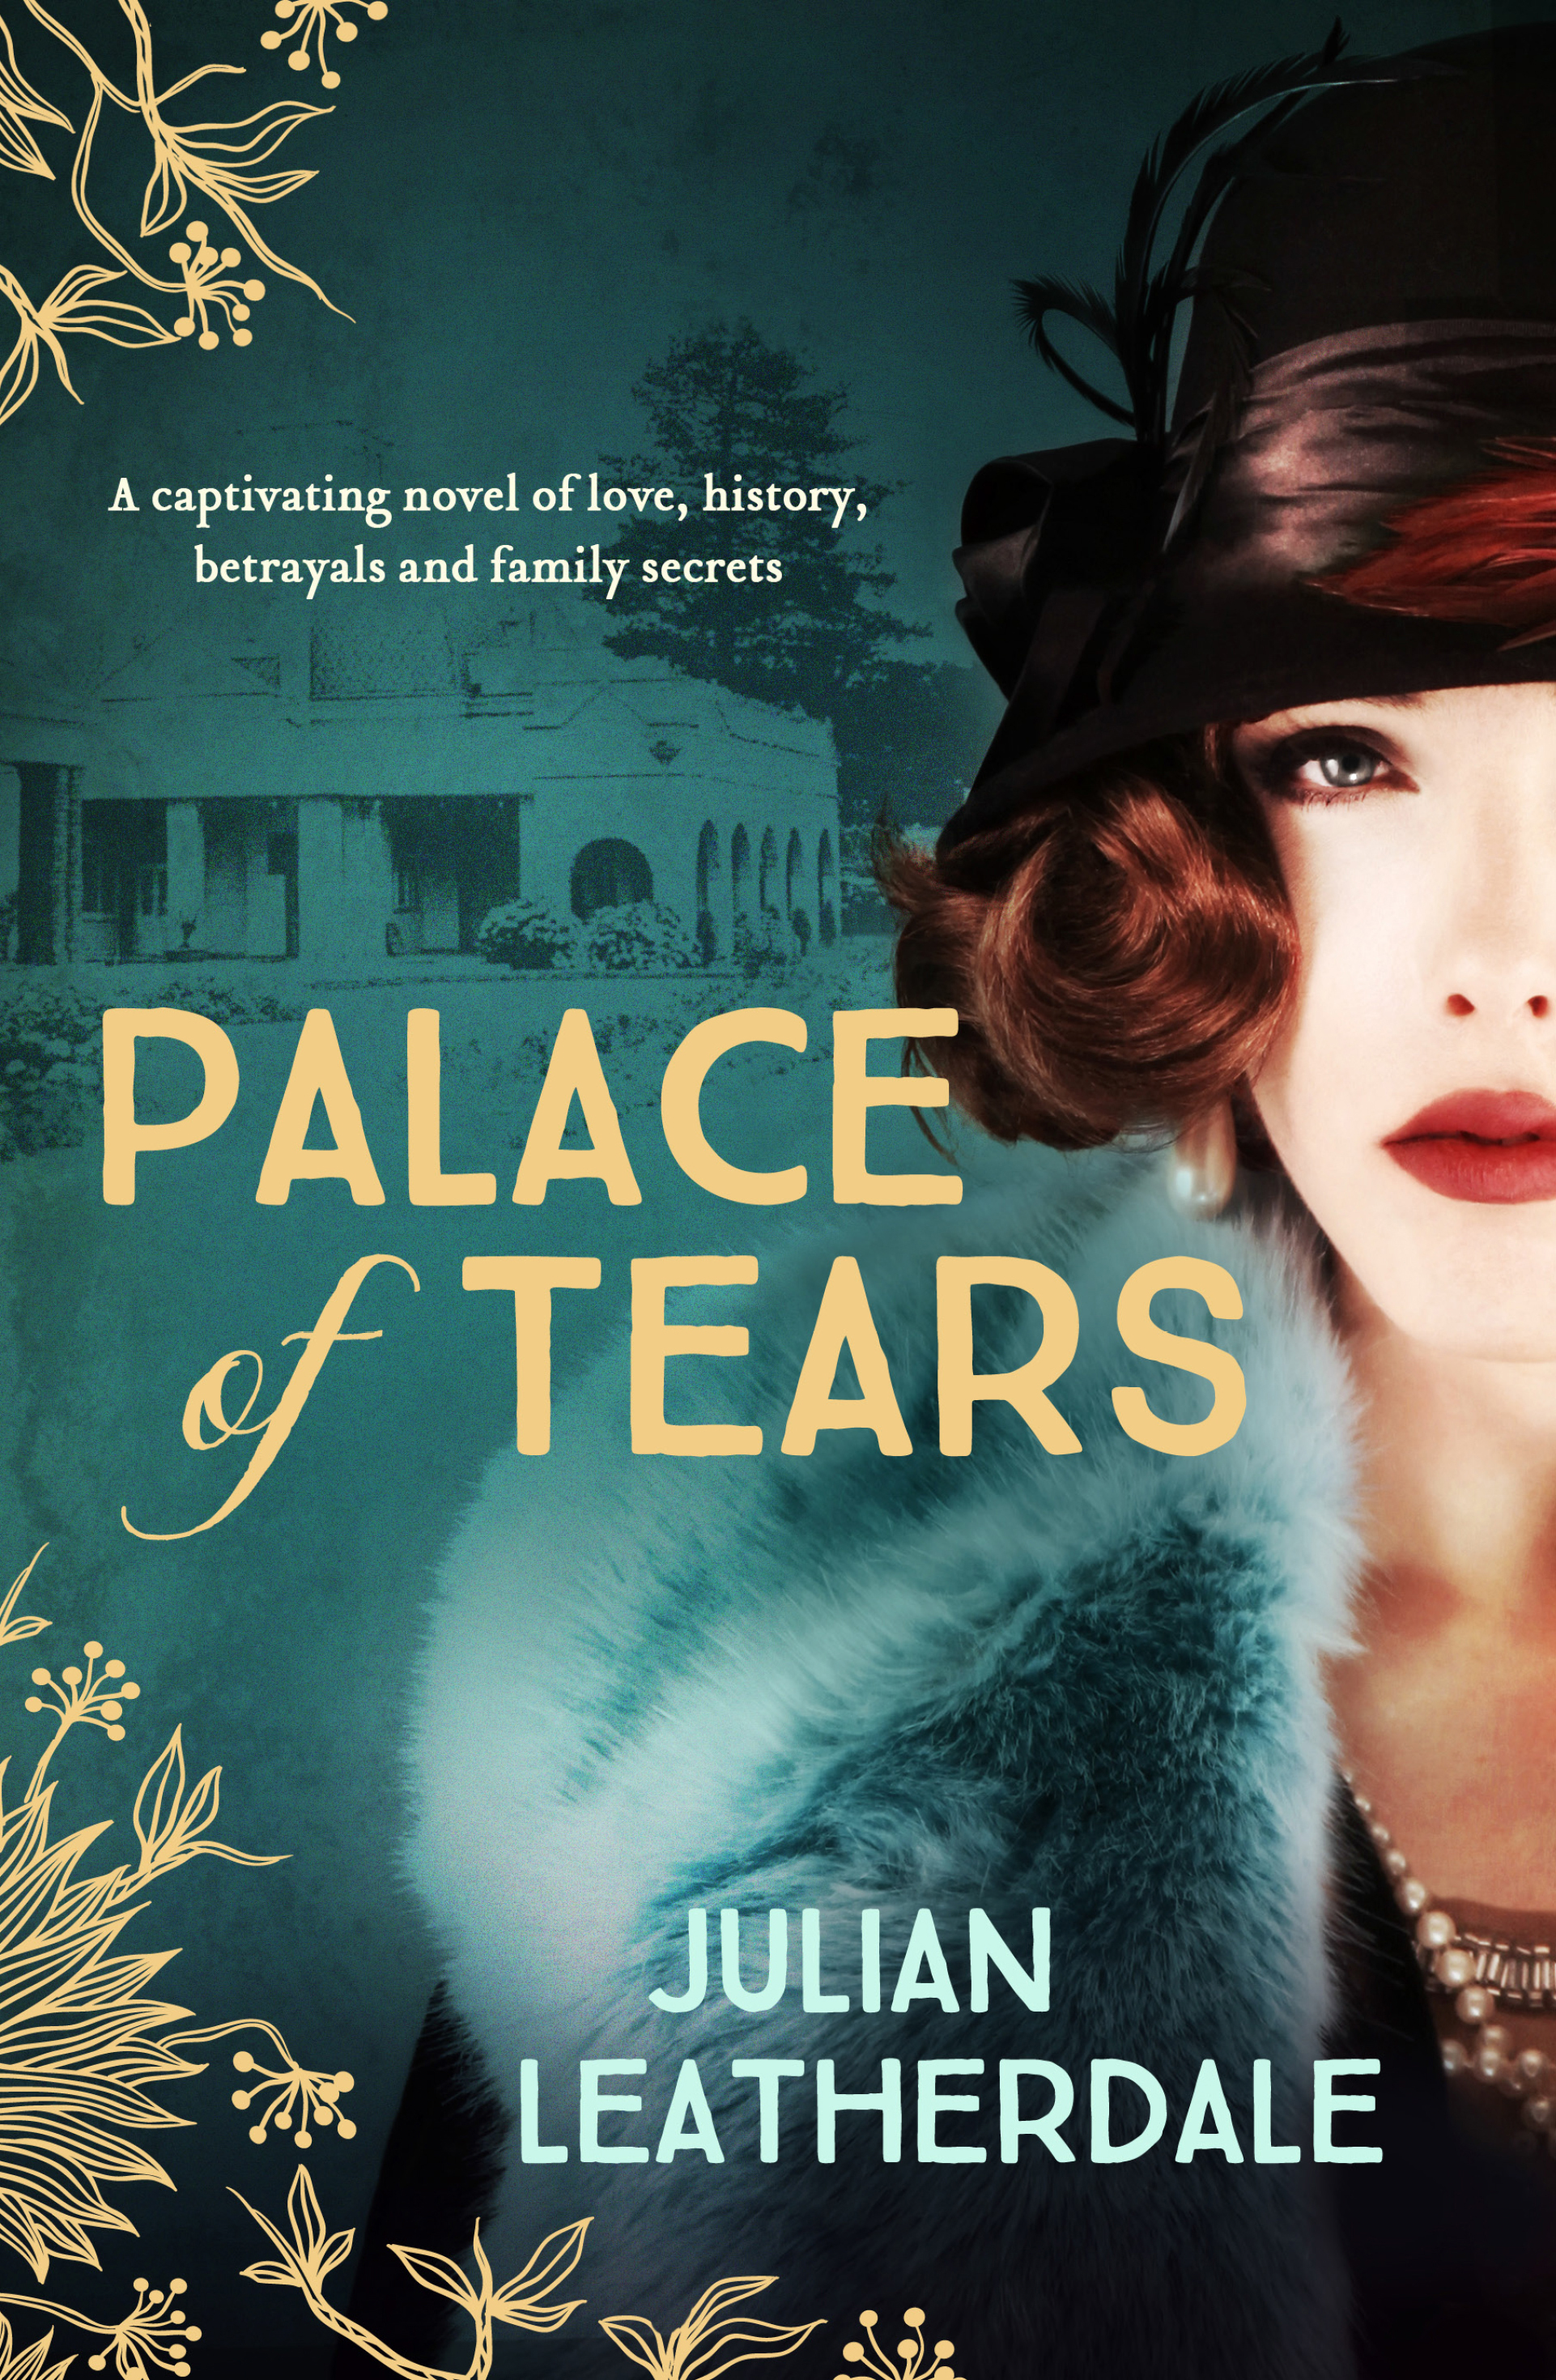 Cover Art for The Palace of Tears, ISBN: 9781760111601